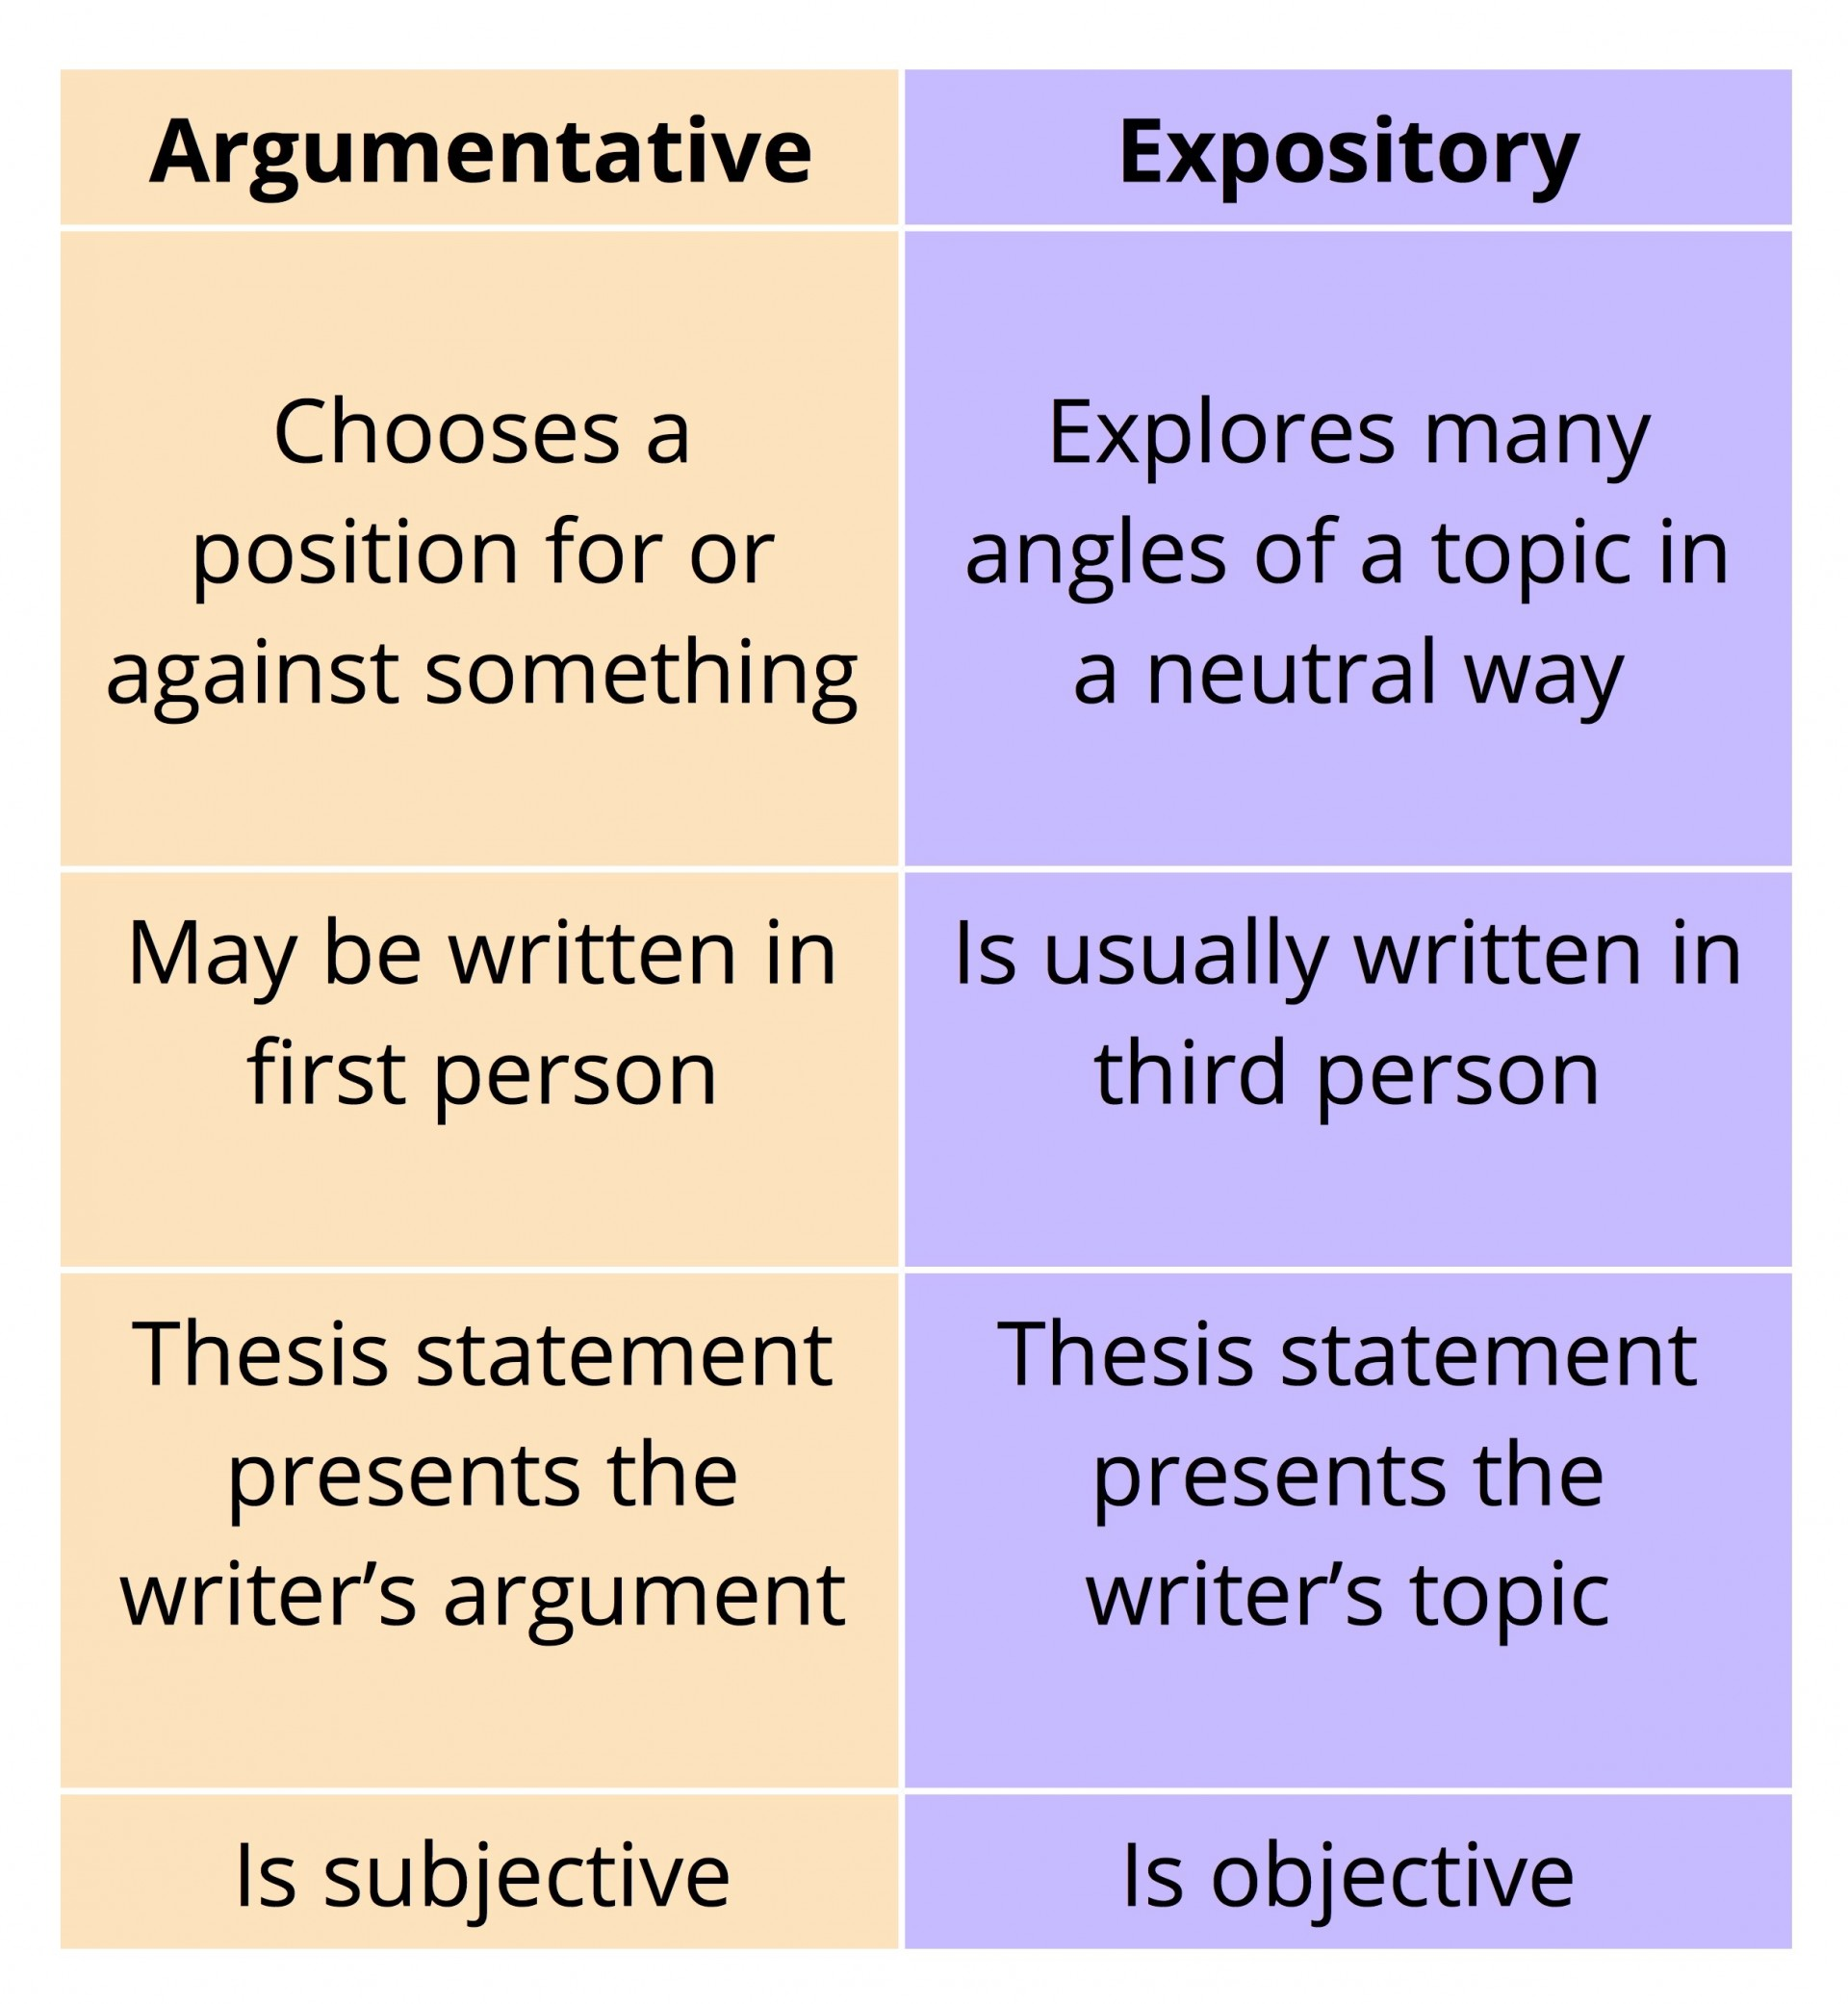 006 What Ispository Essayample How To Write An Tigers Start Argumentative Conclusion The Differences Between Anpository And E Body Paragraph Introduction Astounding Is A Expository Essay Good Topic Writing Reflective 1920